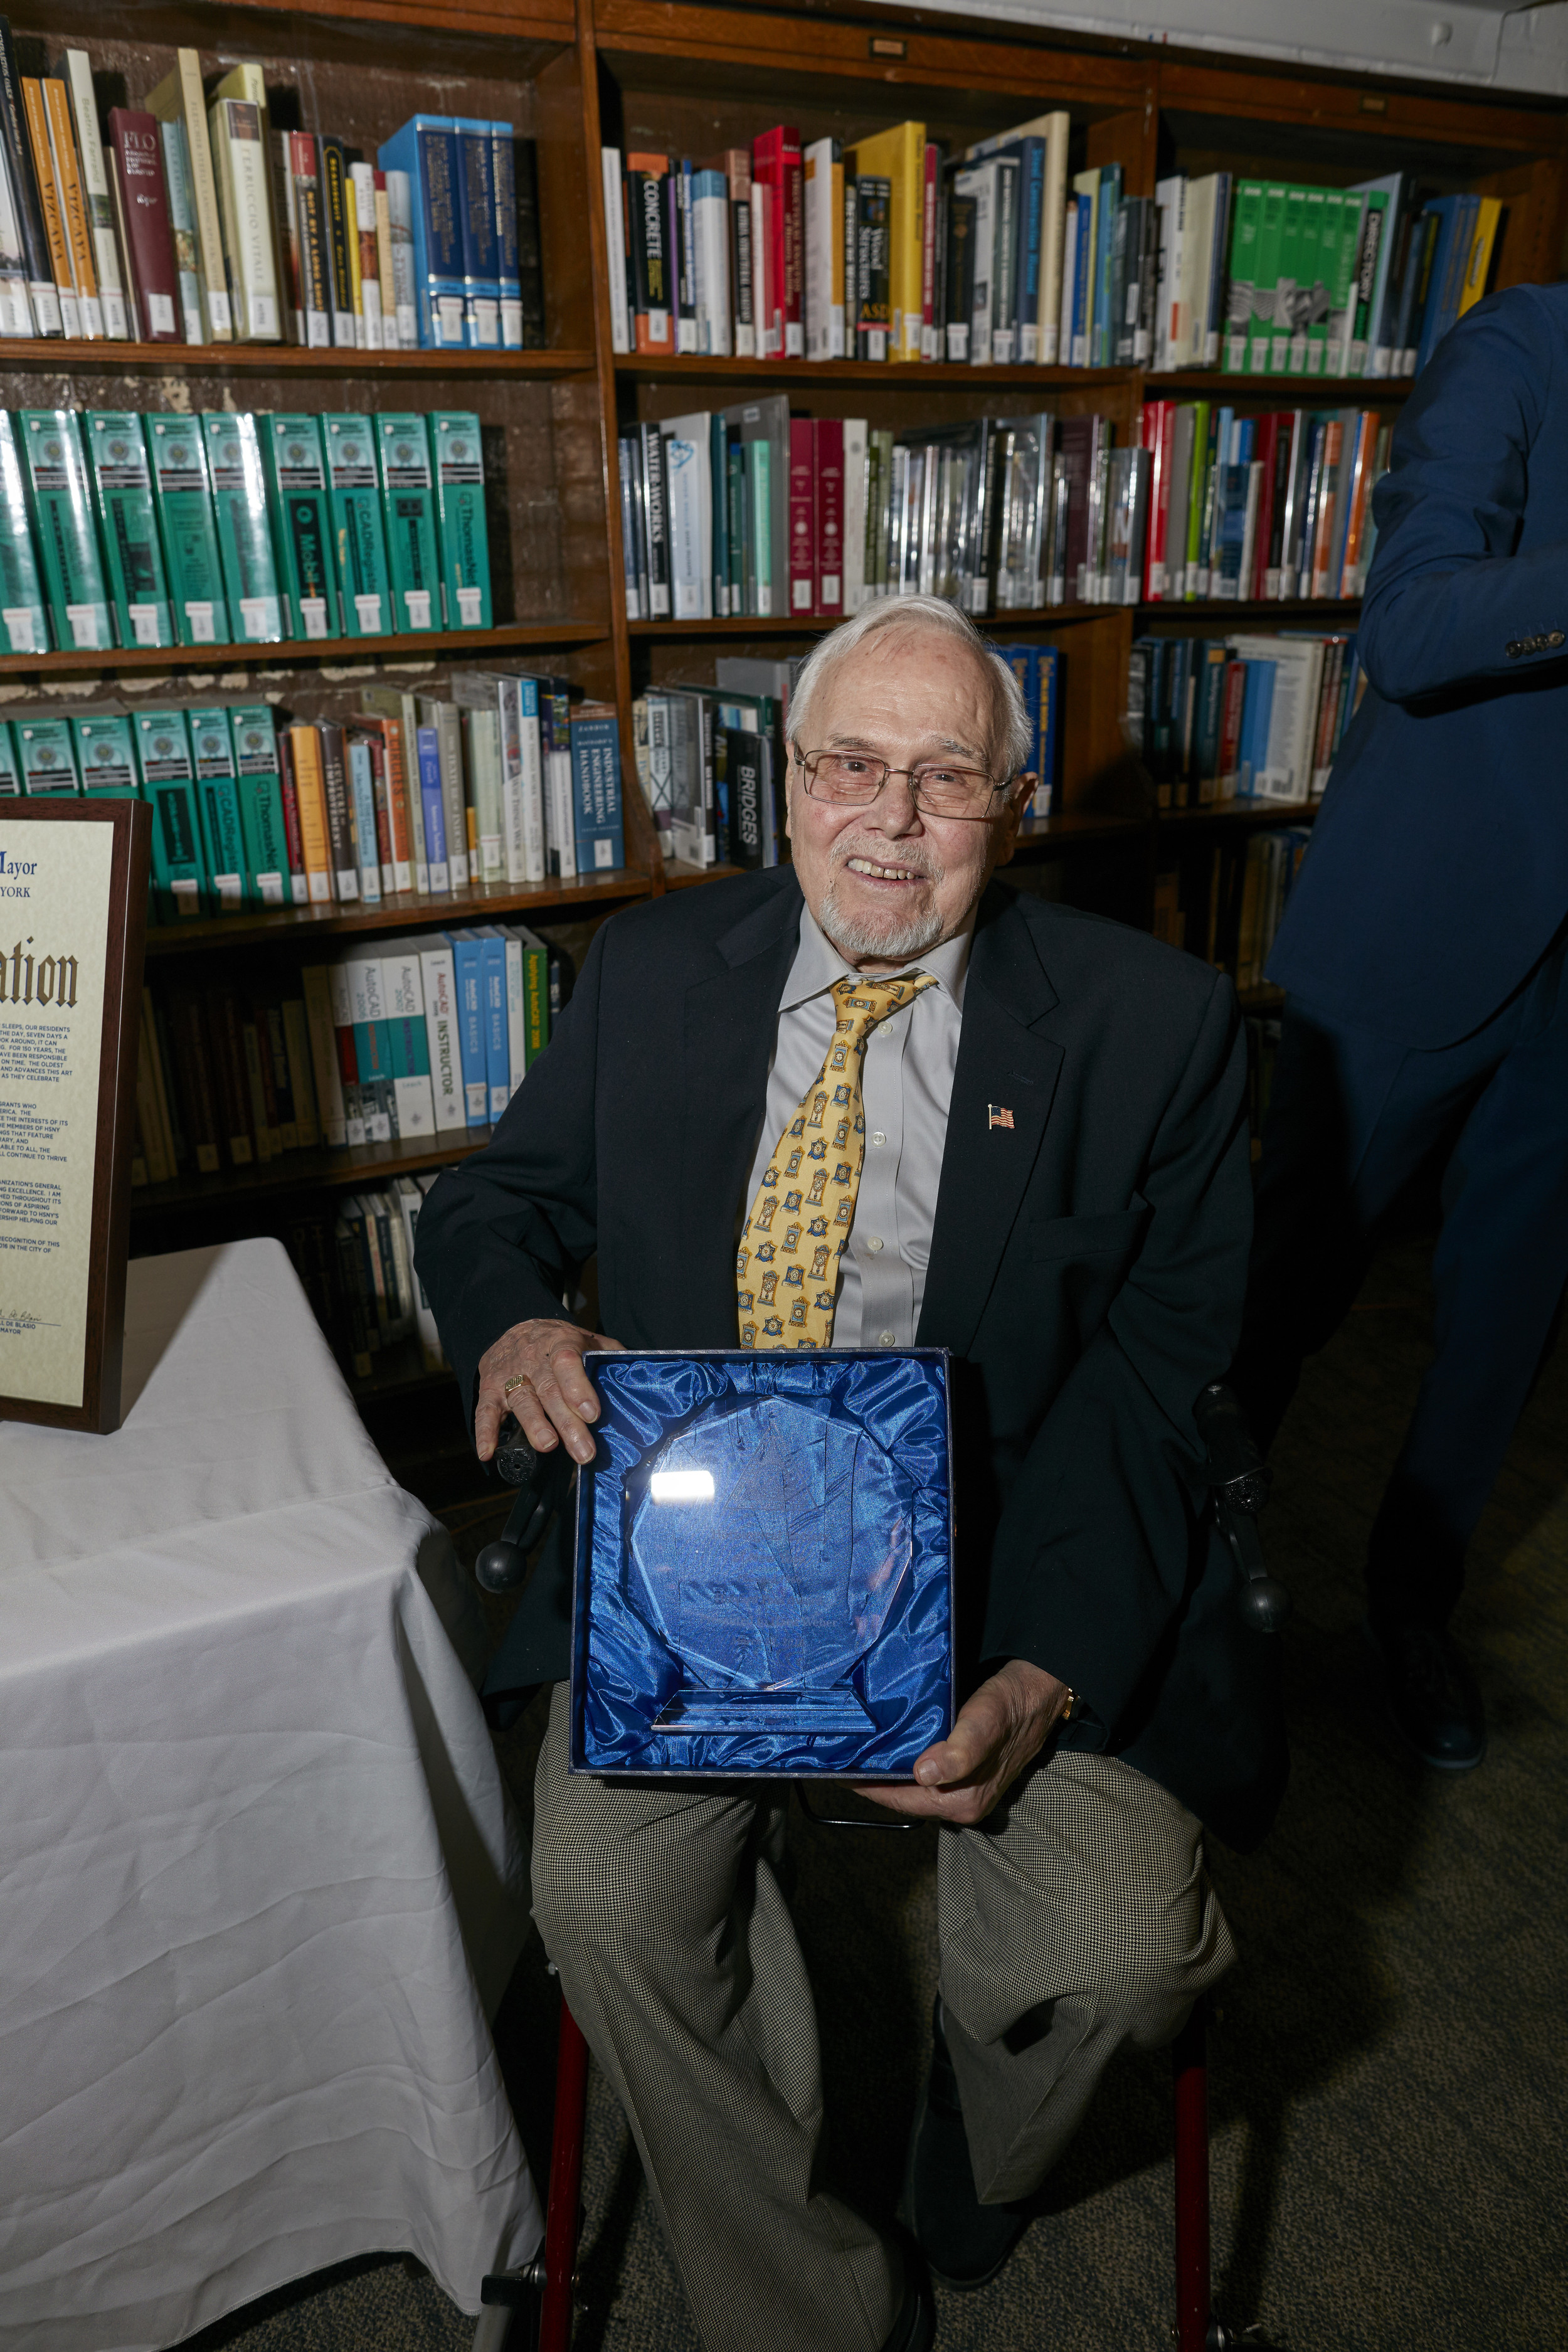 Hans Weber, HSNY Trustee & Fellow, displaying the Howard Fass Award he received earlier in the night